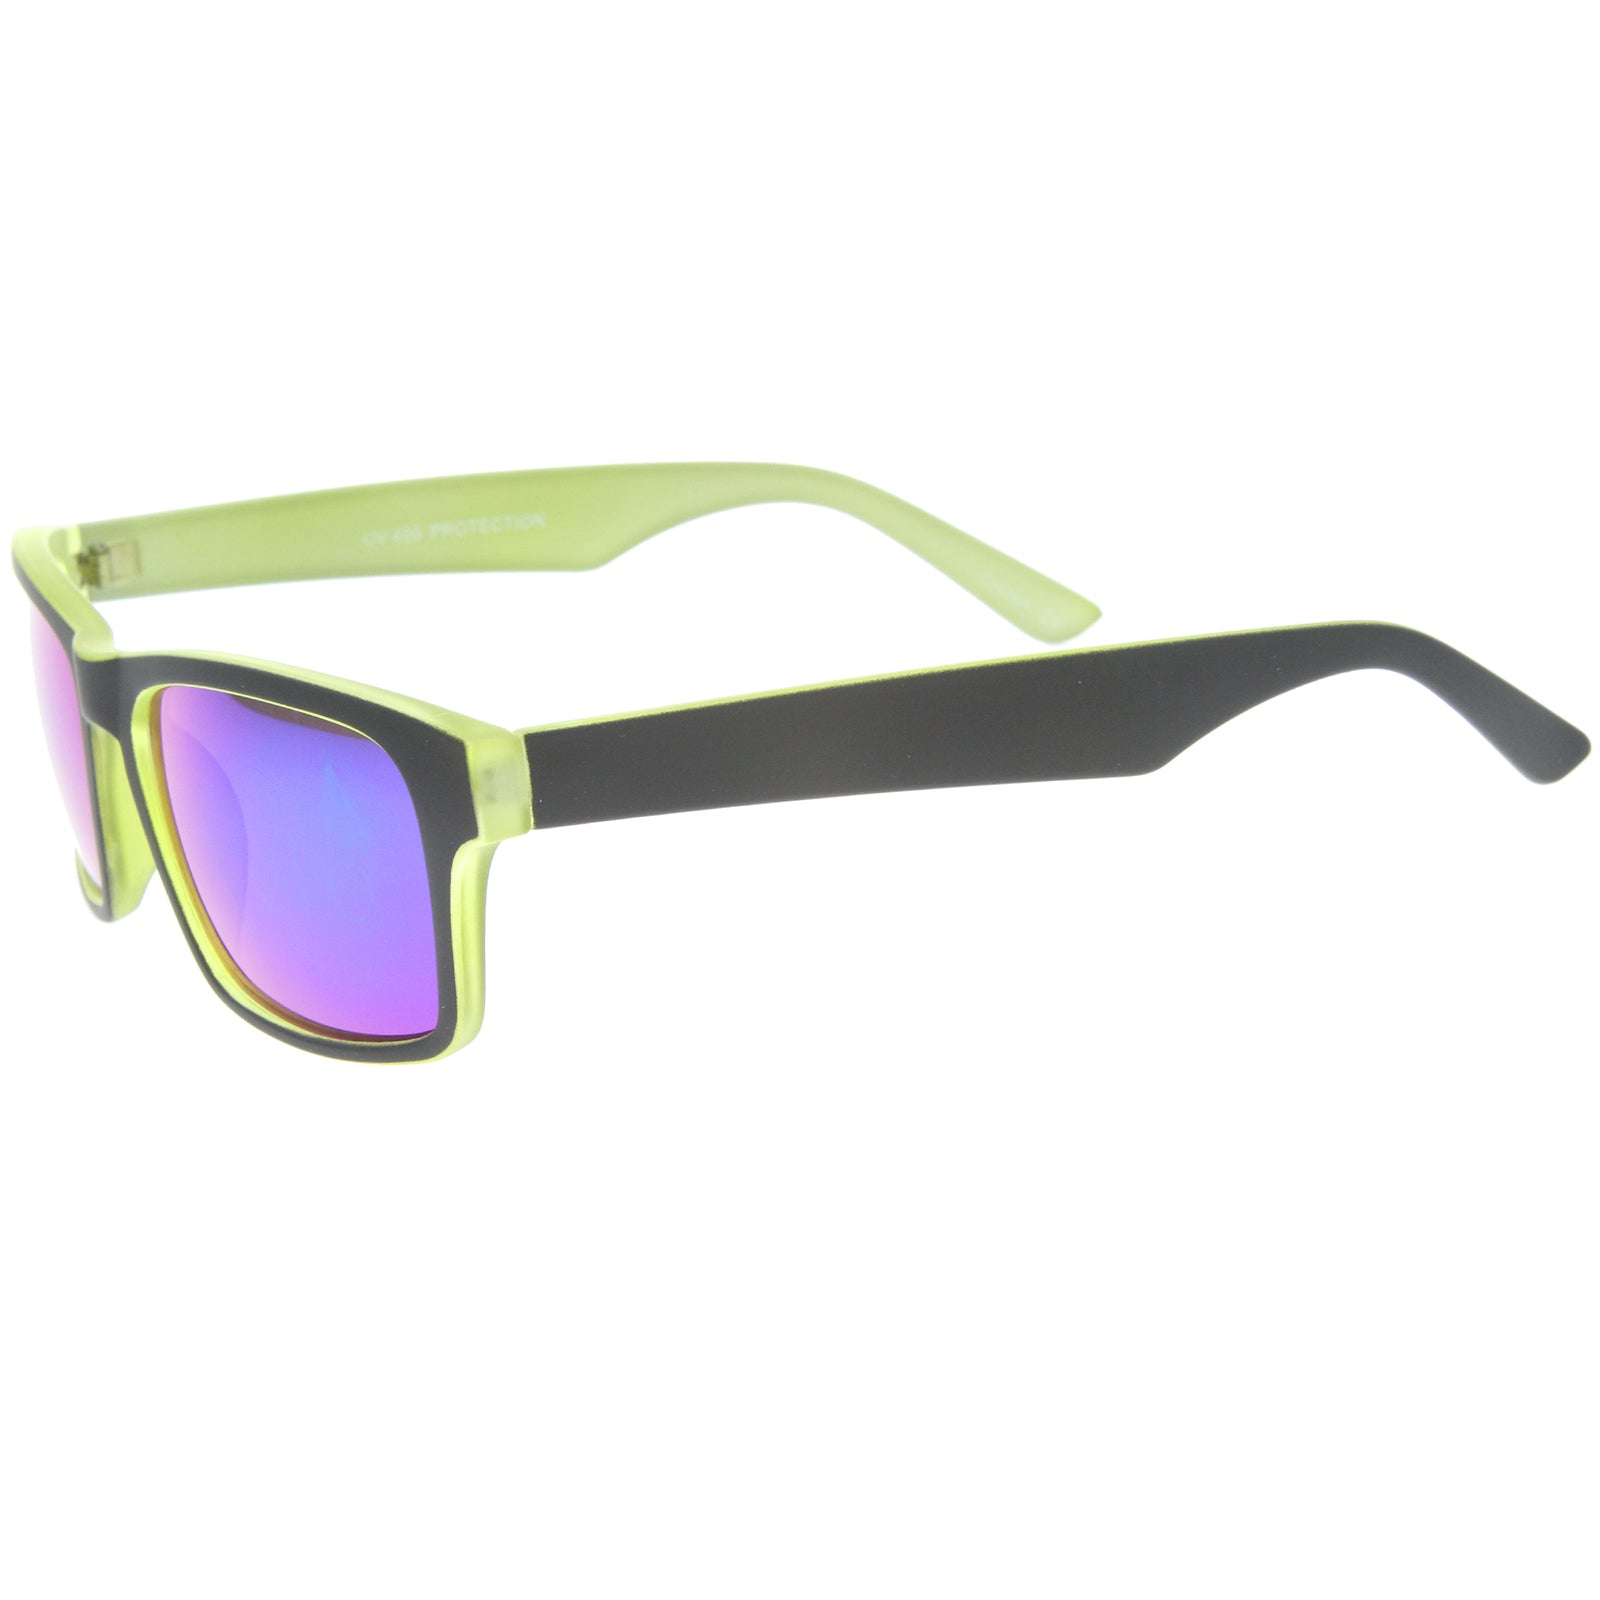 Mens Sport Sunglasses With UV400 Protected Mirrored Lens - sunglass.la - 15